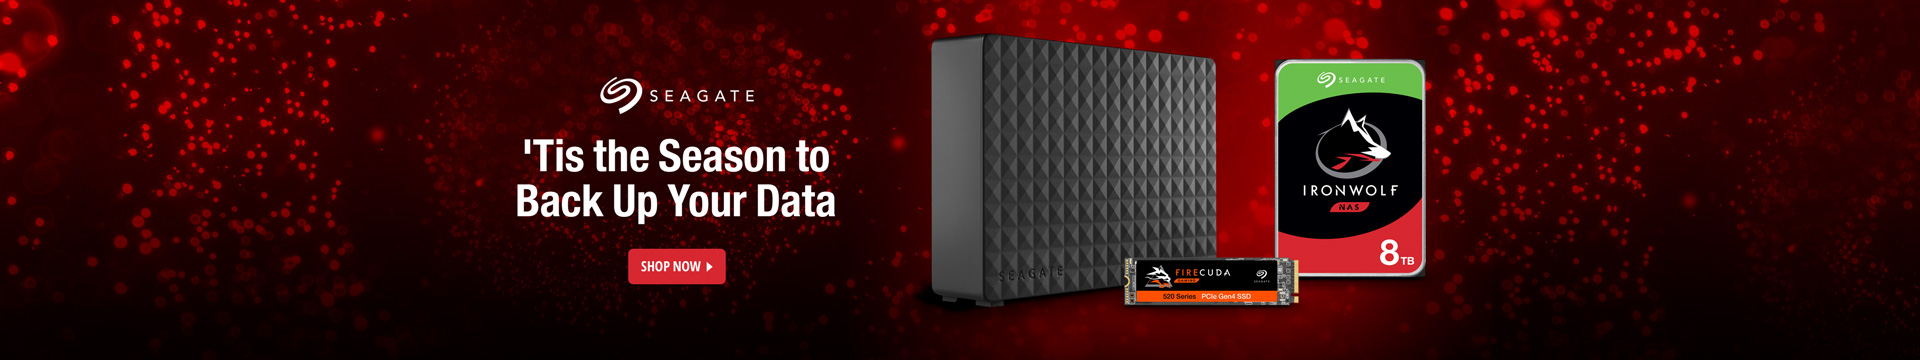 'Tis the season to back up your data